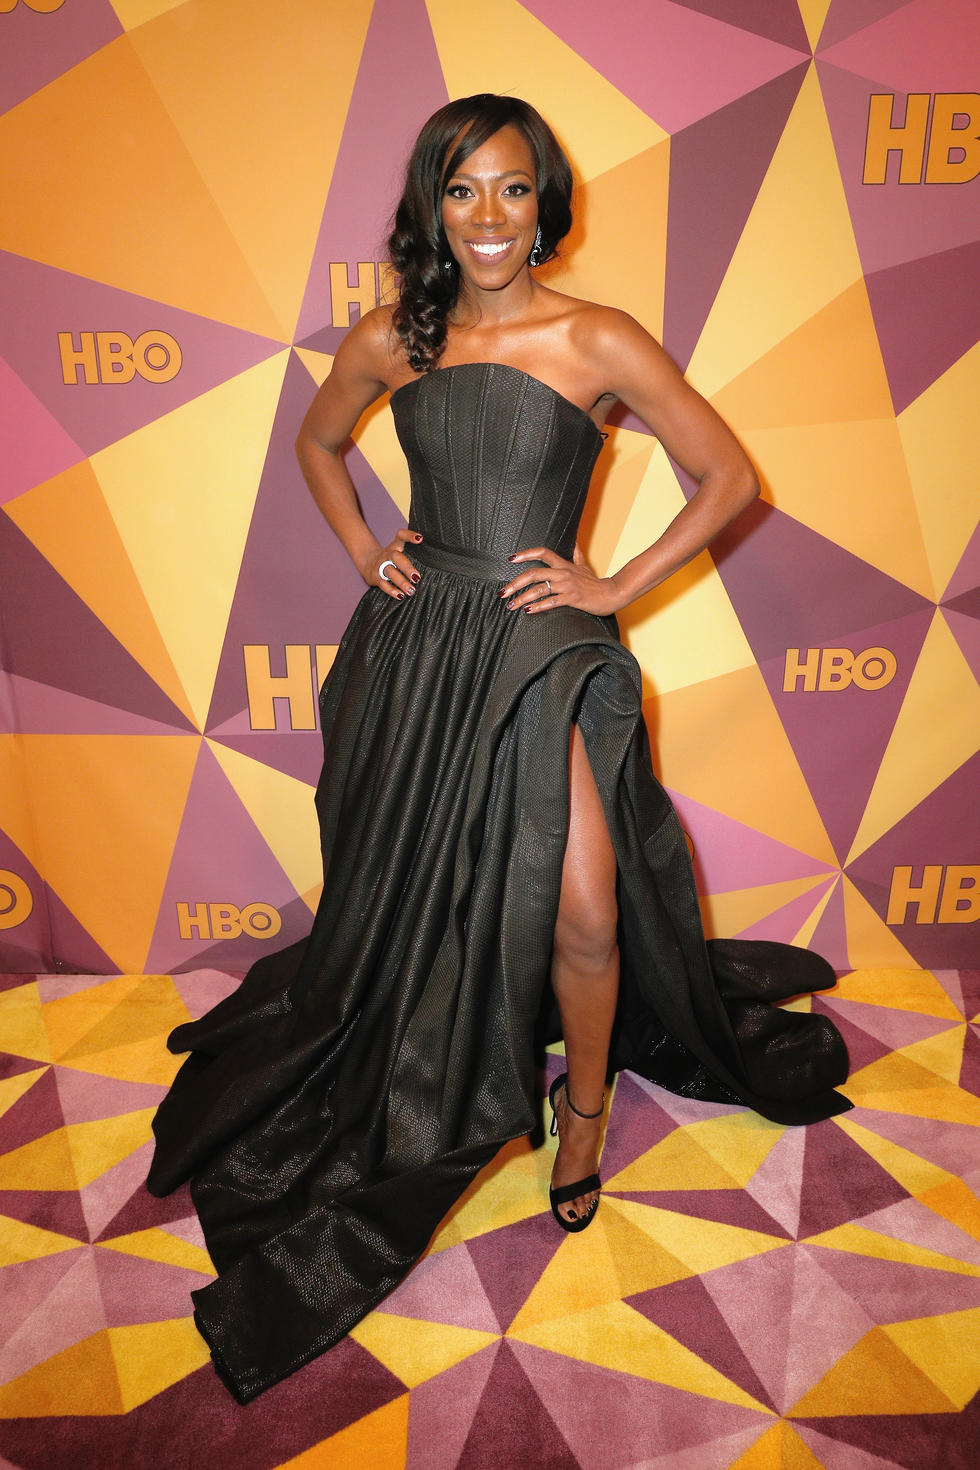 'Insecure' star Yvonne Orji arrived wearing a Walter Mendez gown teamed with Stuart Weitzman heels